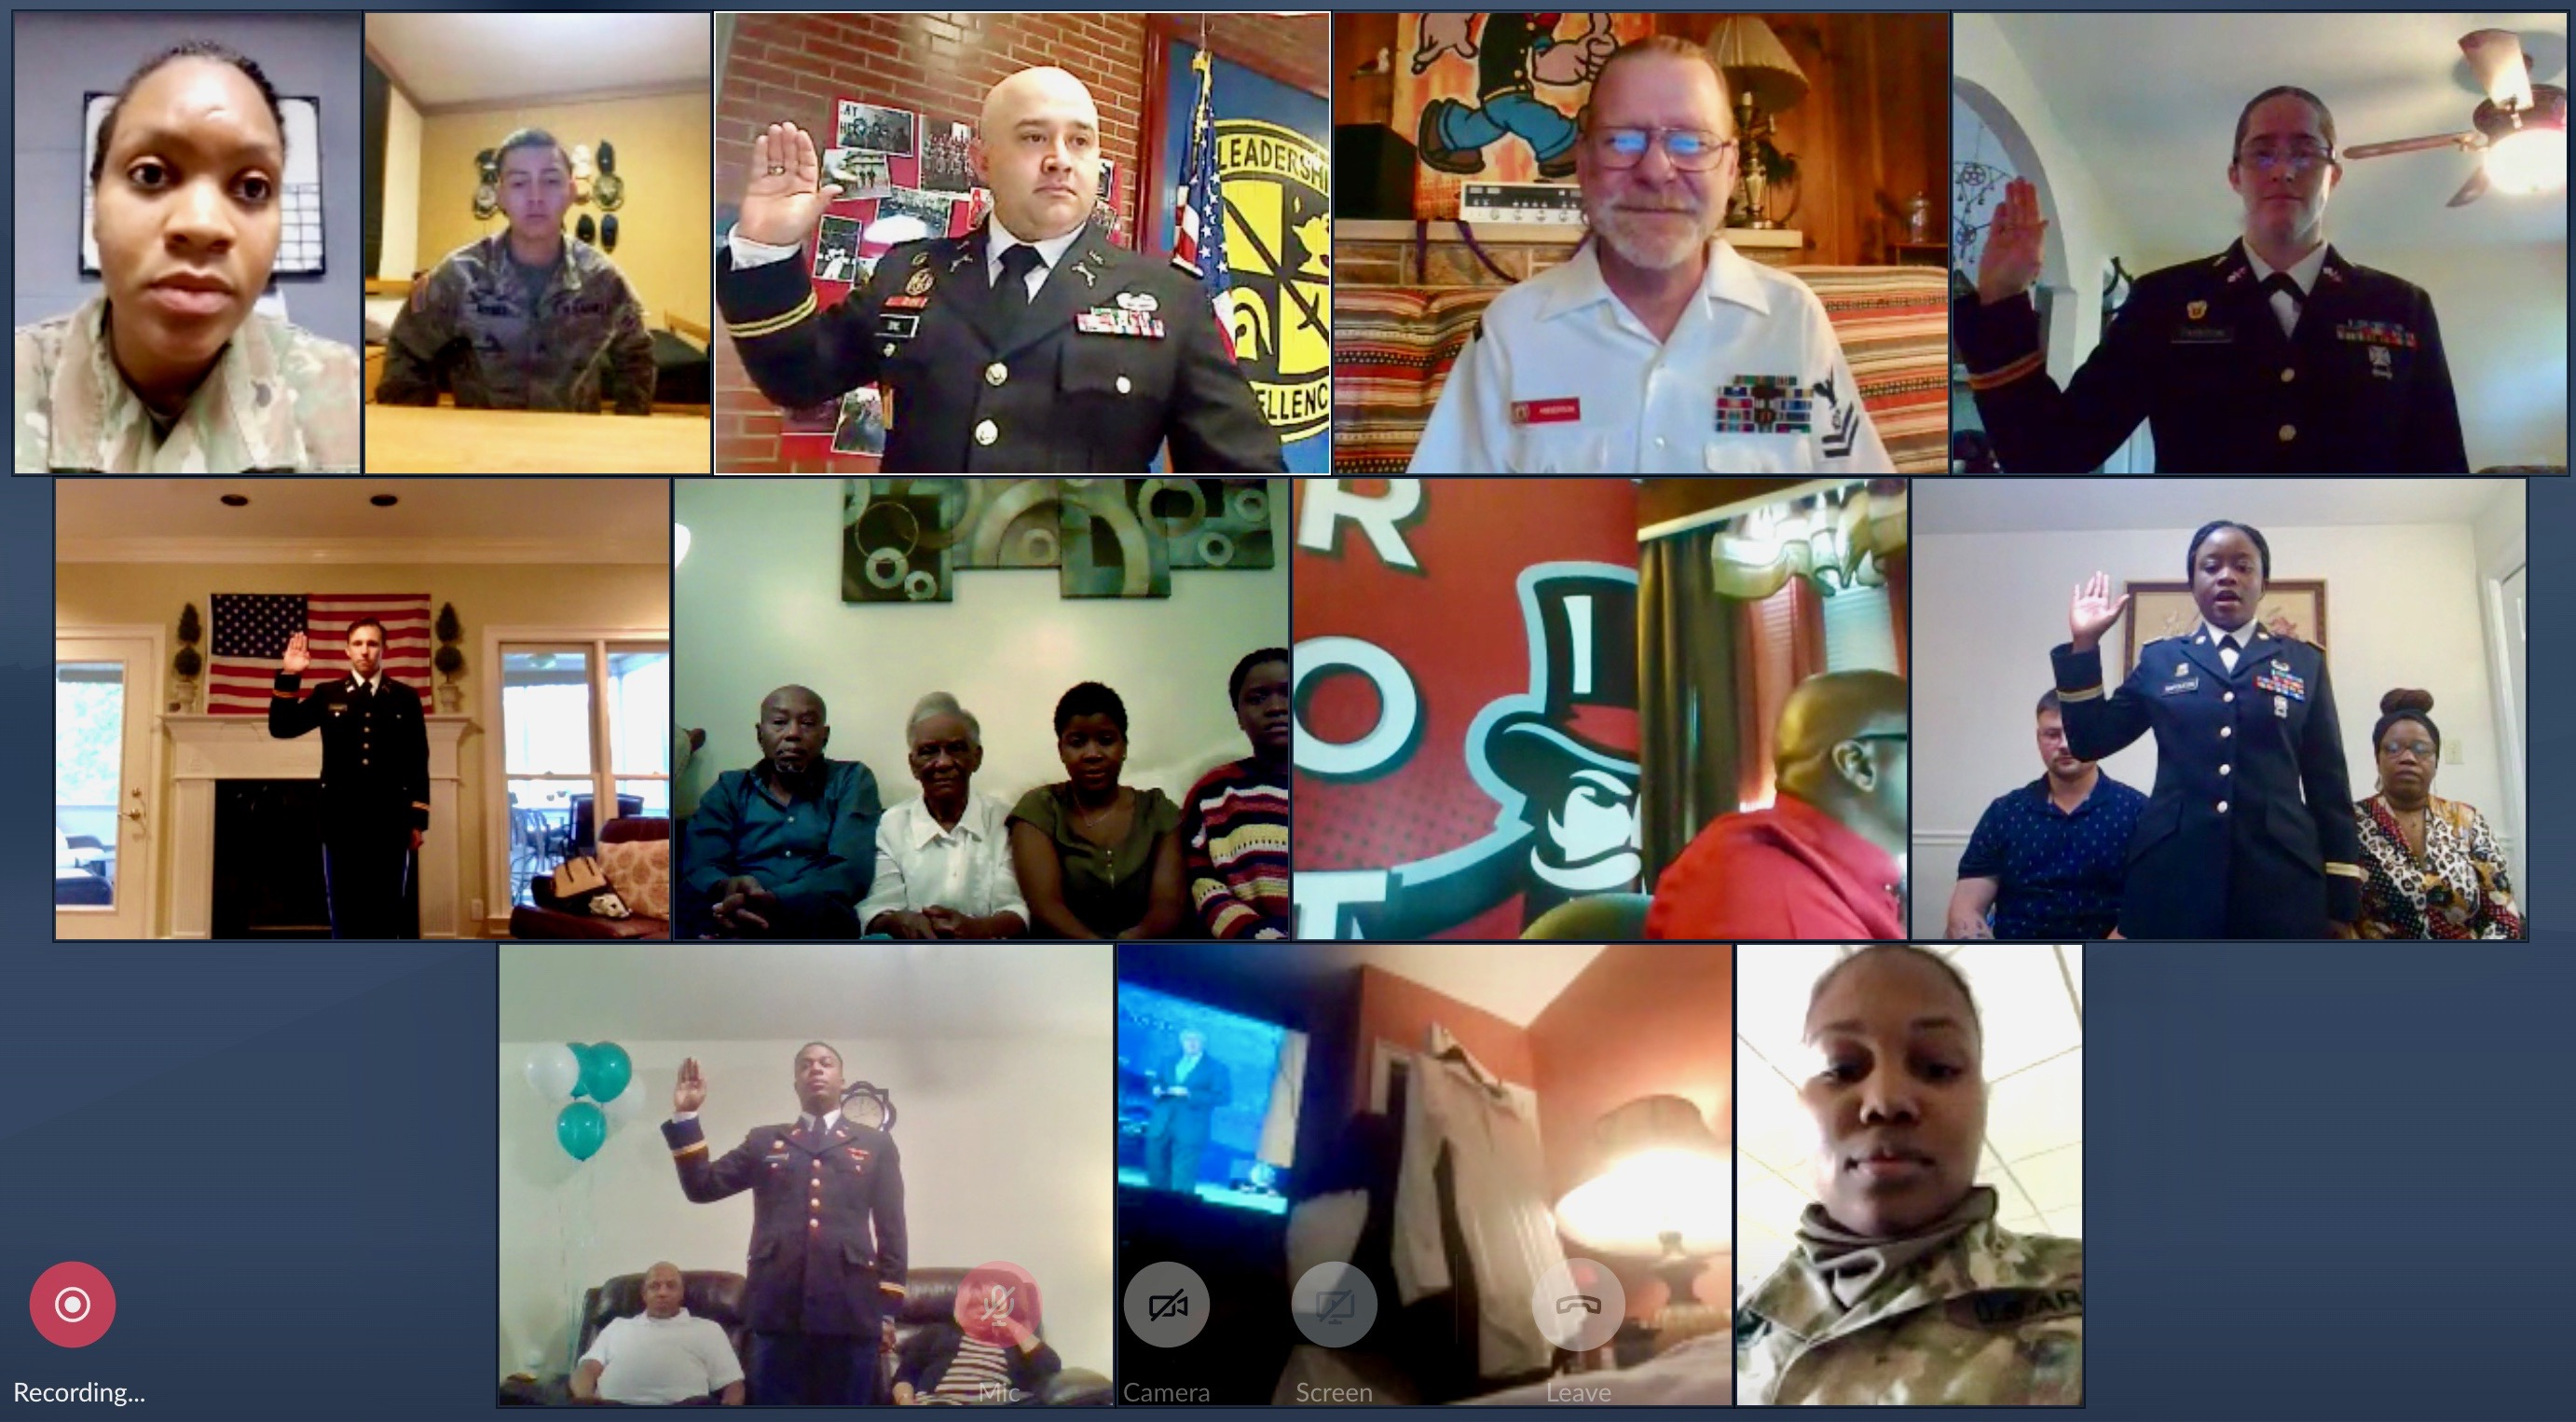 At home with their families at their side, 18 Austin Peay ROTC students 'virtually' commission as Army officers